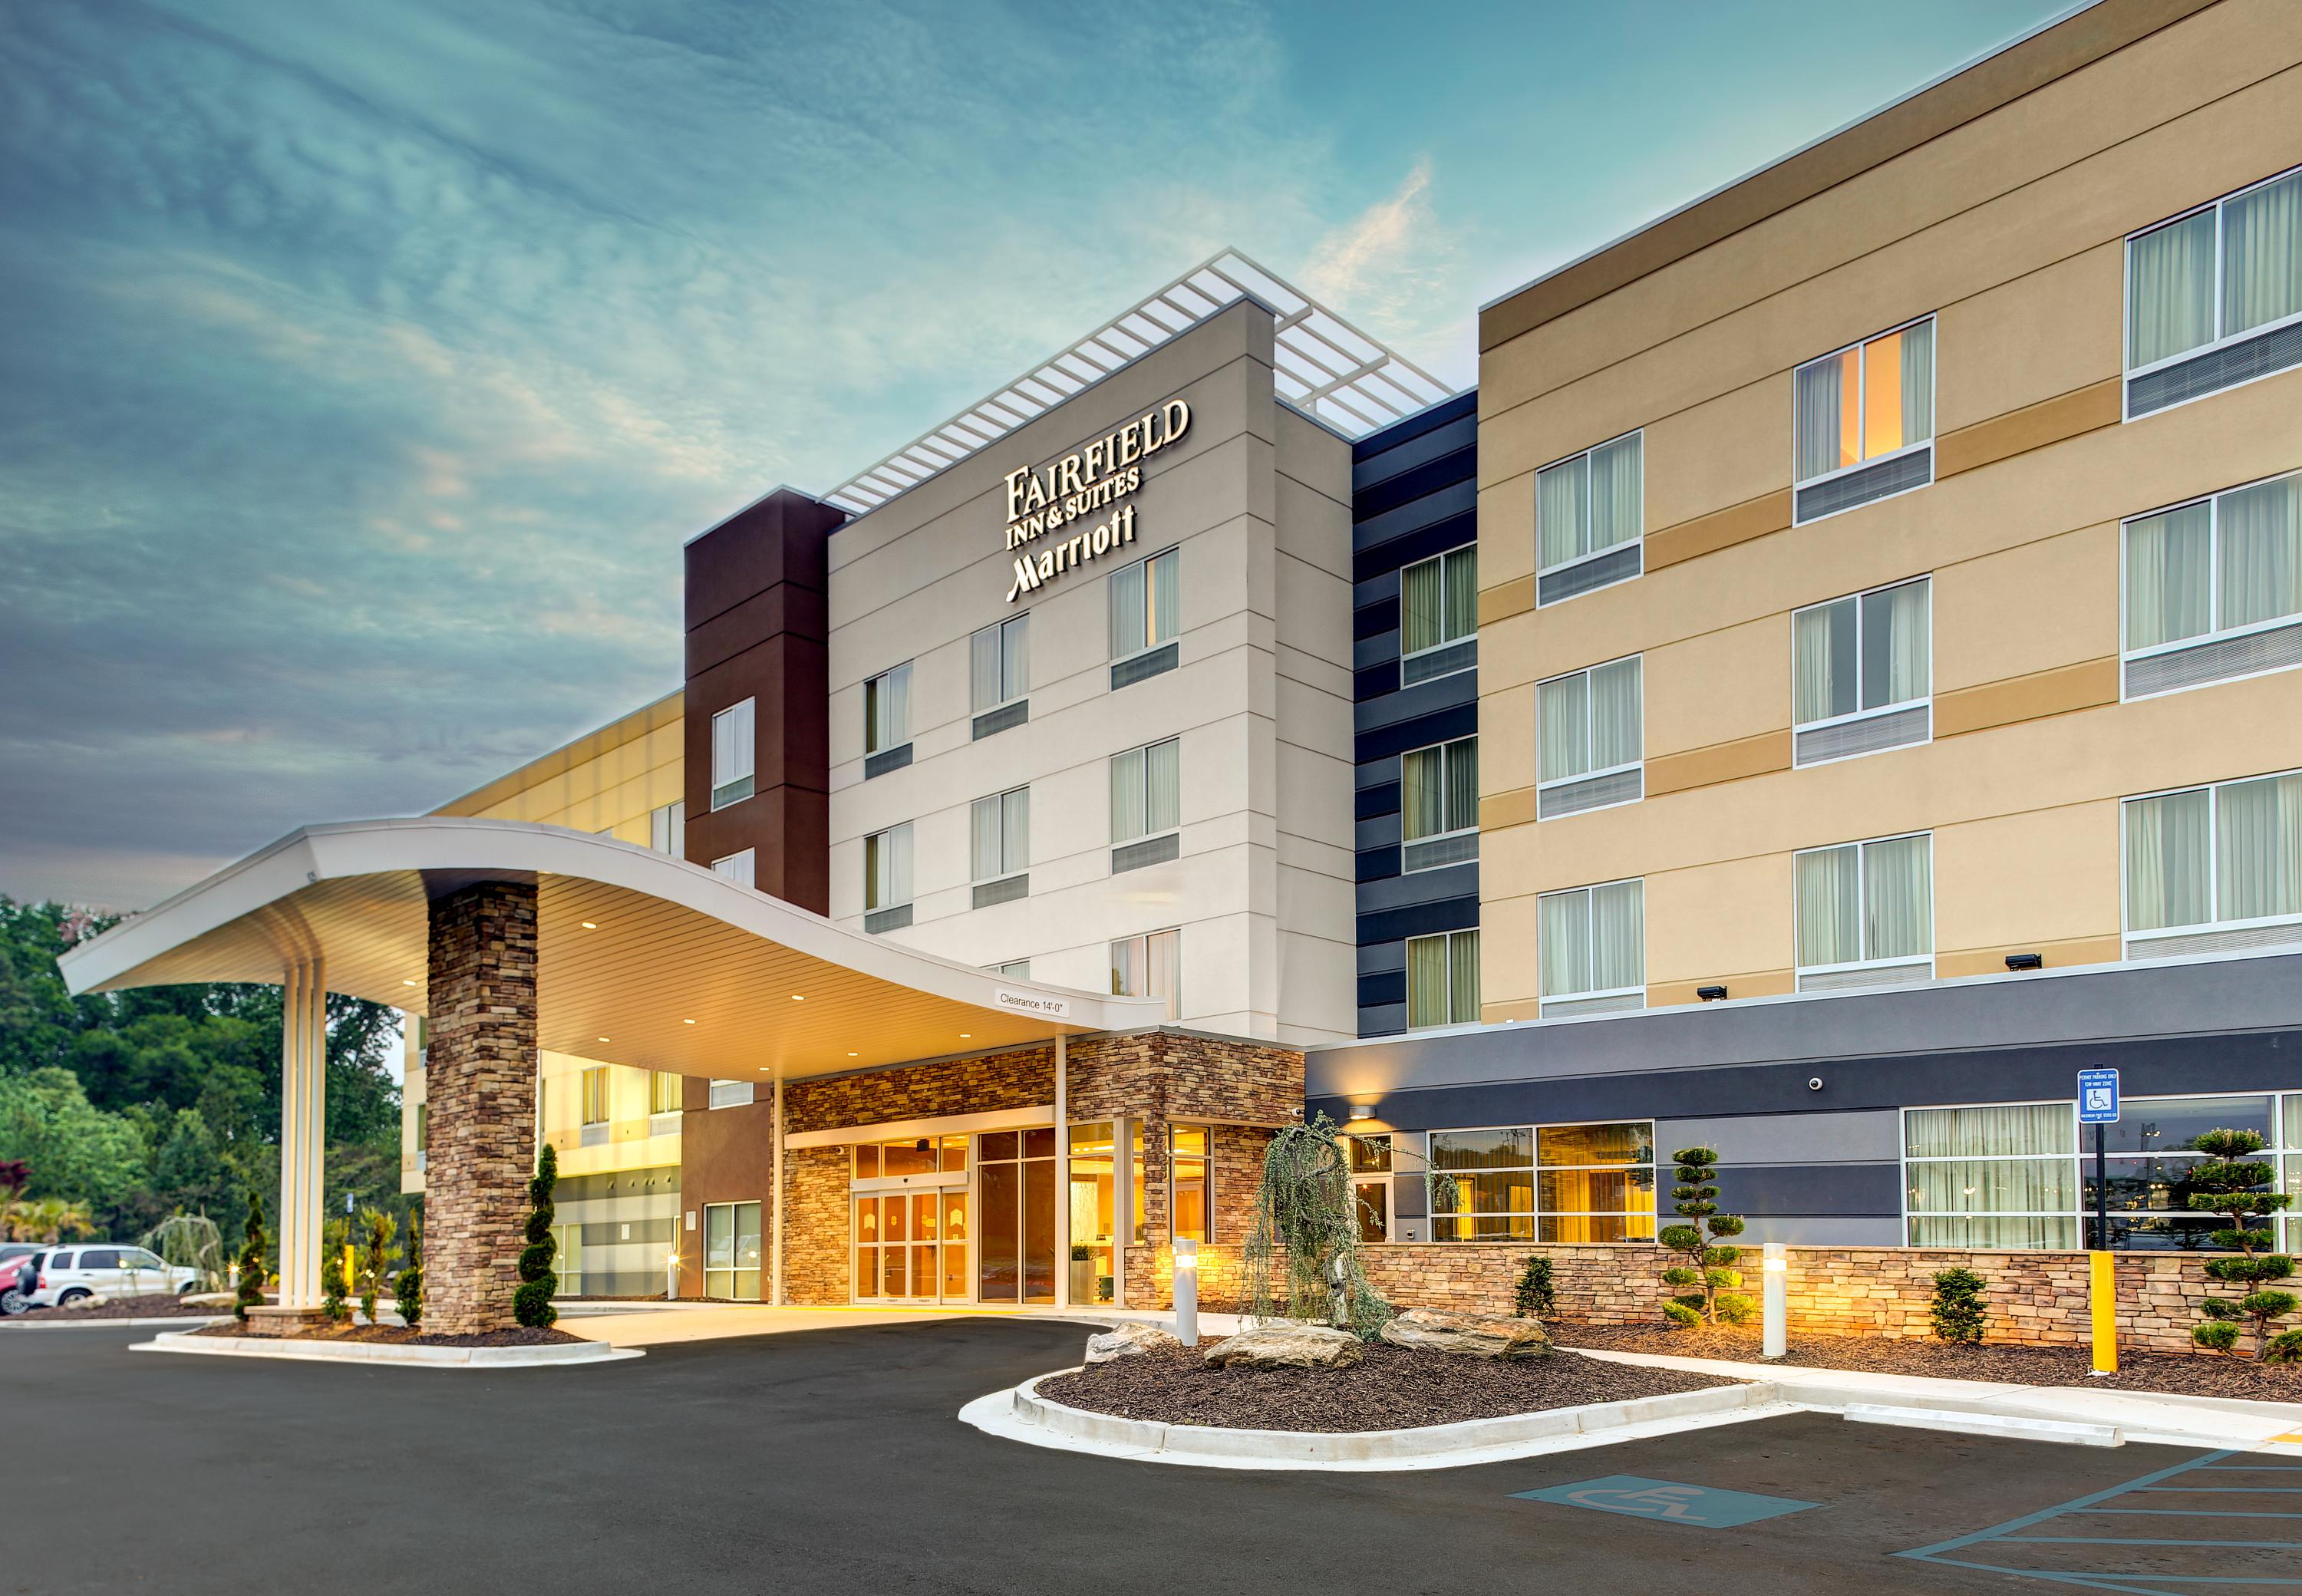 Fairfield Inn & Suites by Marriott Atlanta Stockbridge image 1